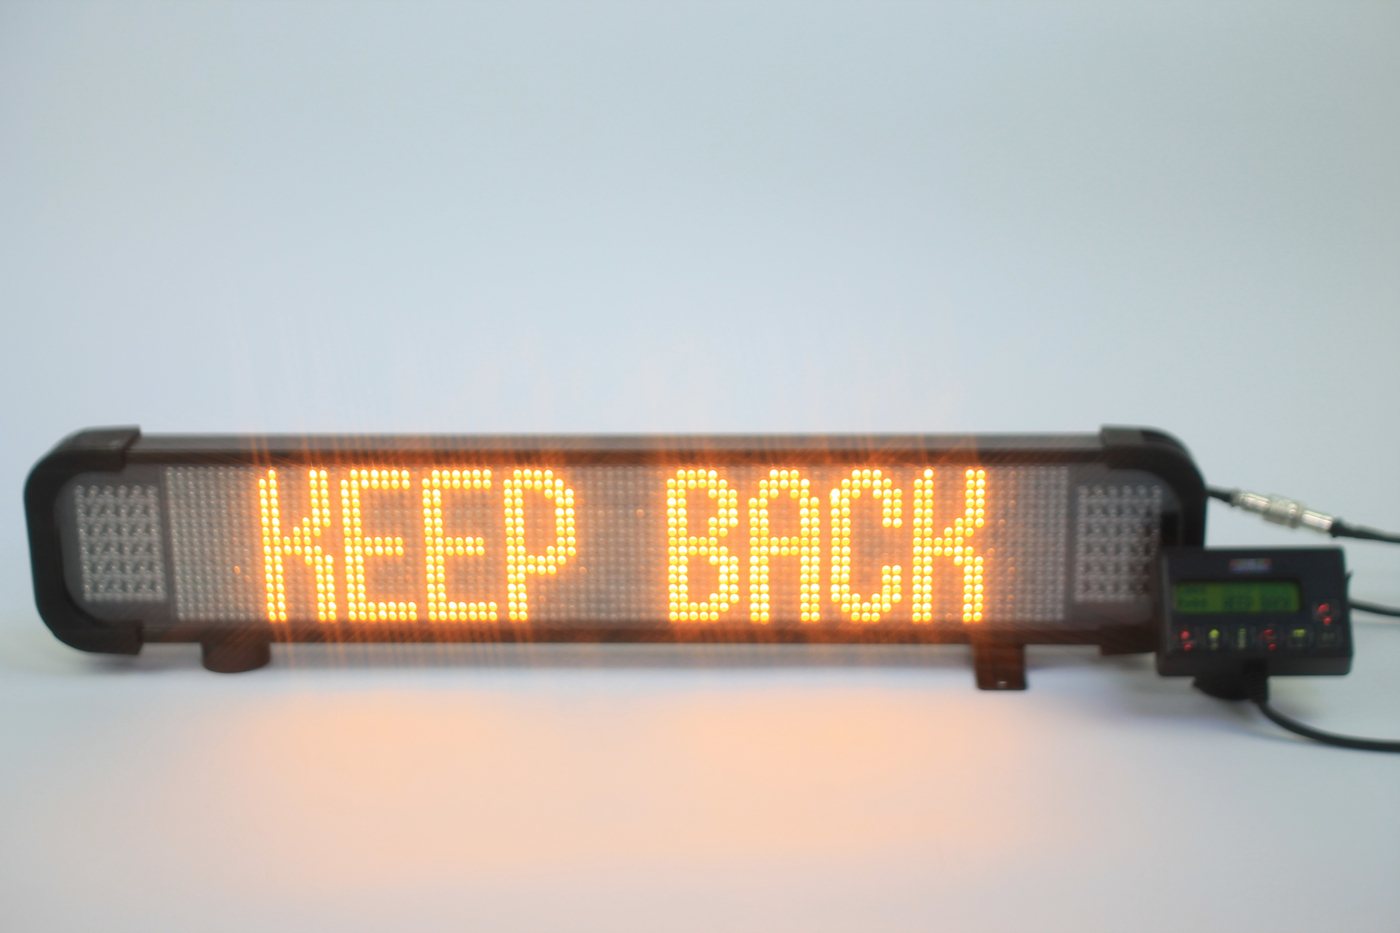 Lightbars beacons premier hazard manufacture and supply infoalert fixed message sign aloadofball Choice Image